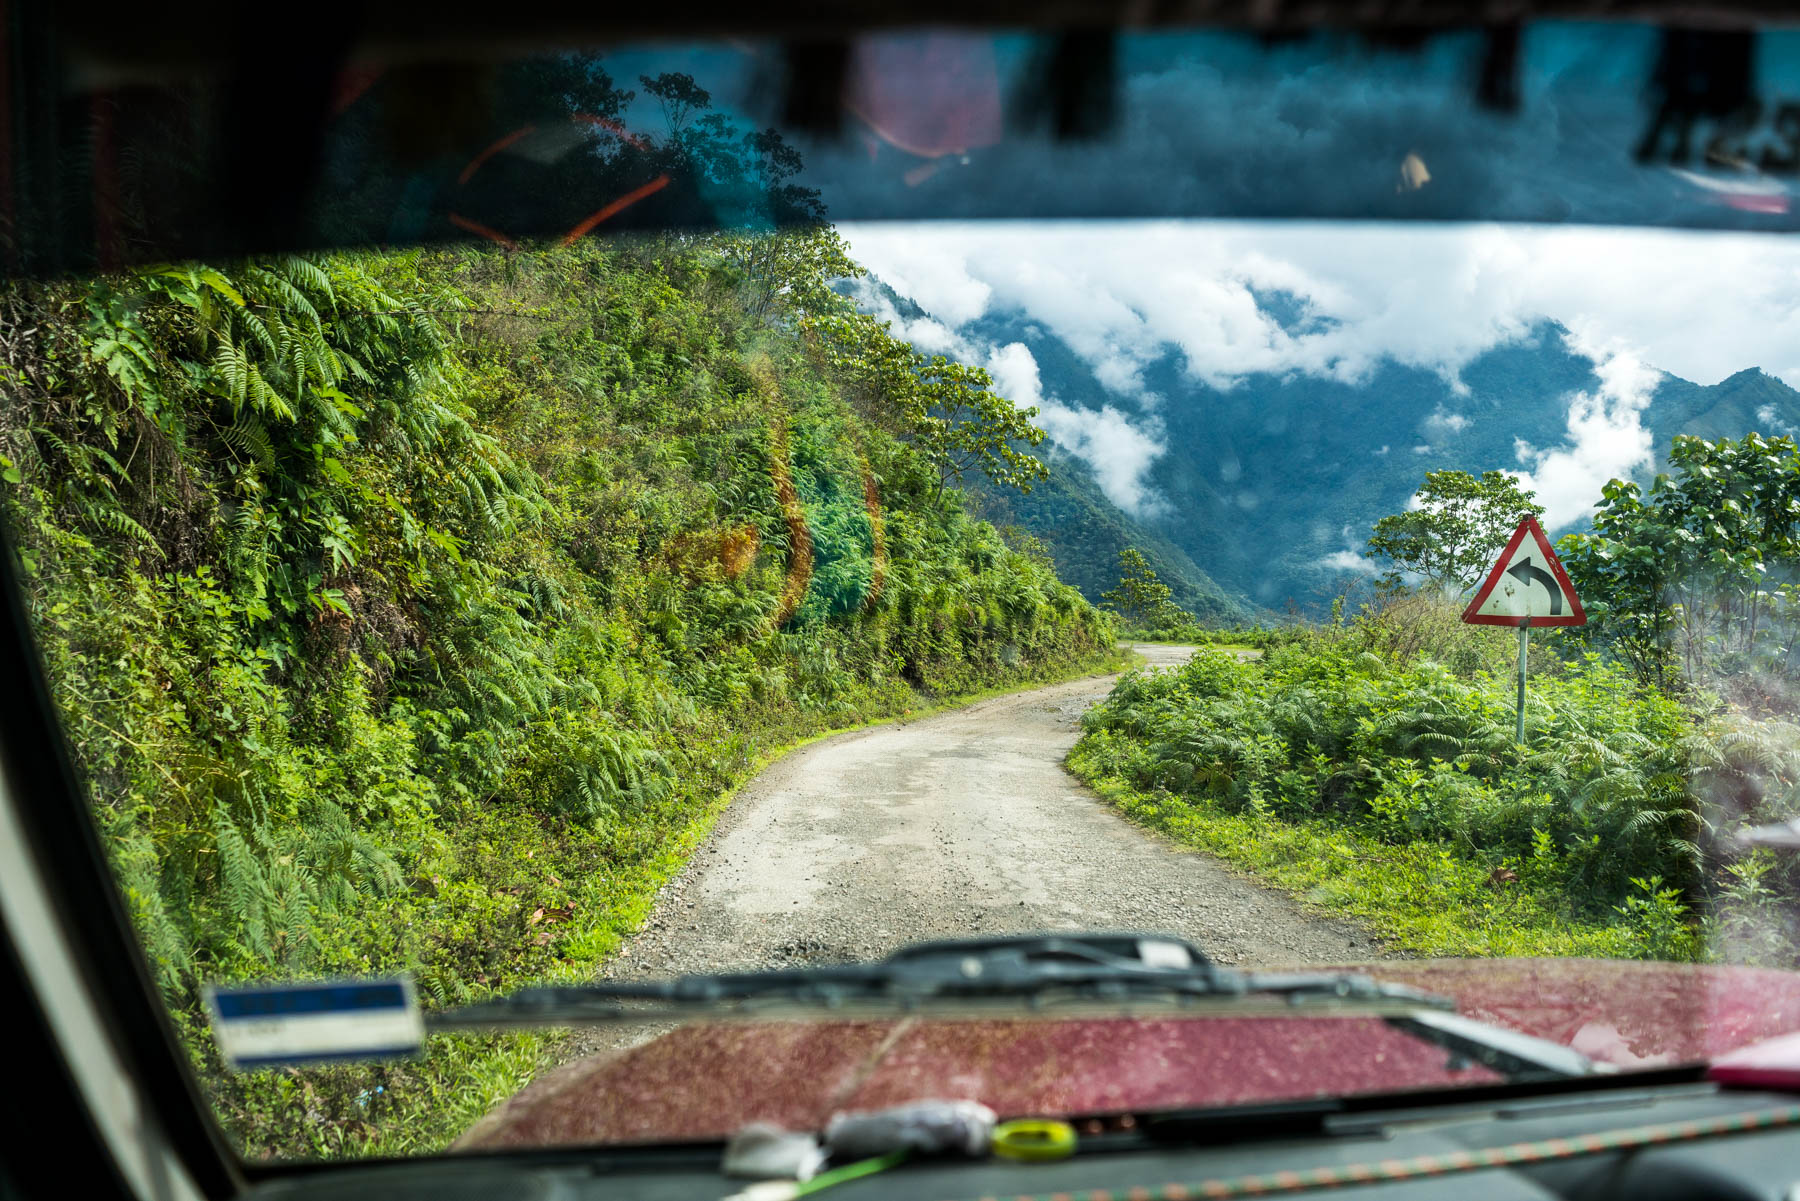 Travel guide to backpacking in Arunachal Pradesh - Sumo transportation on the way to Pasighat - Lost With Purpose